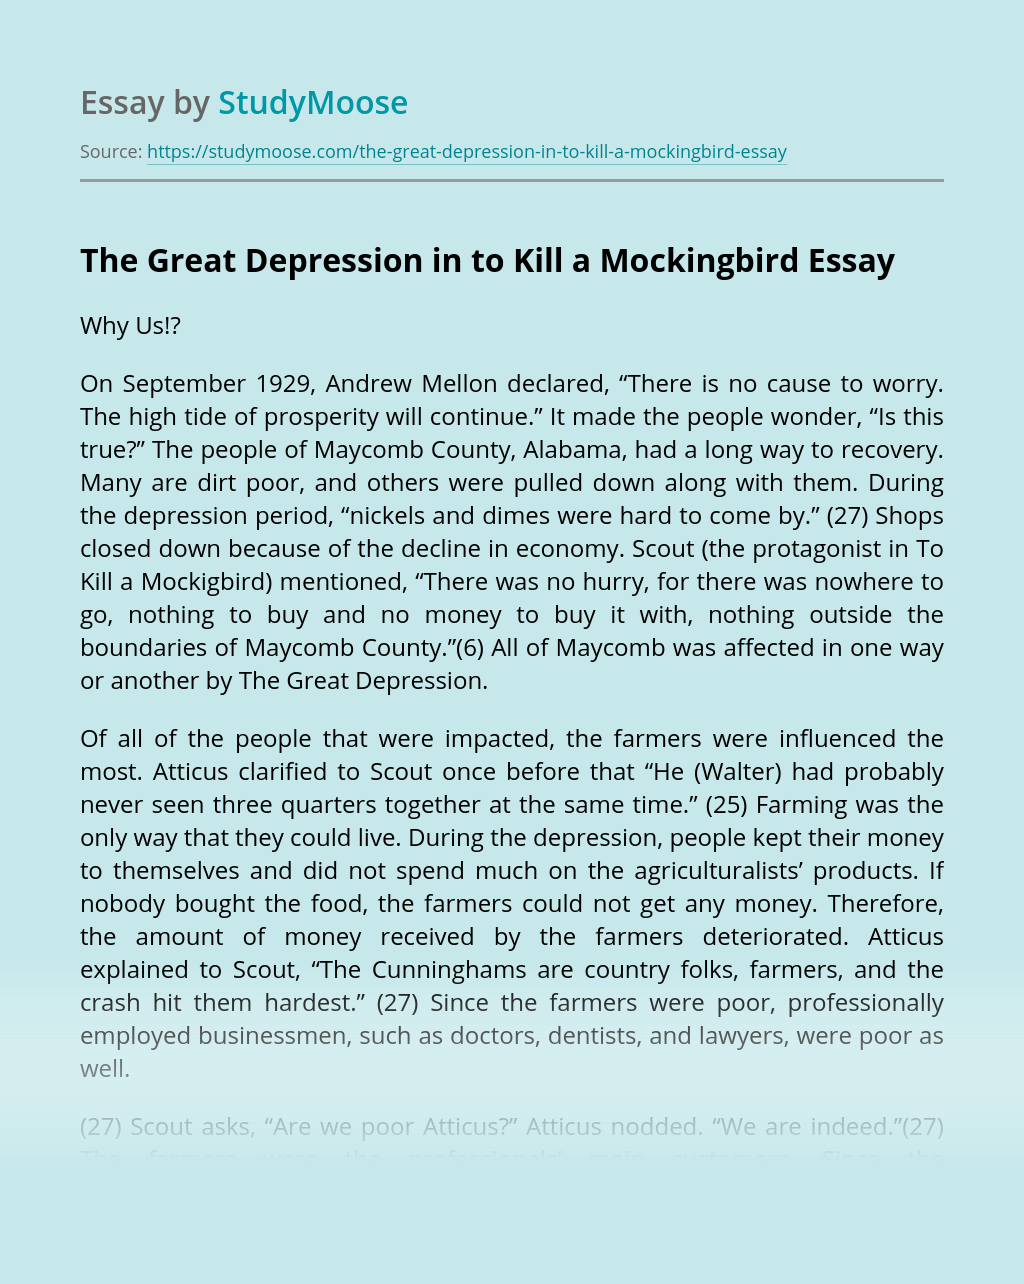 The Great Depression in to Kill a Mockingbird